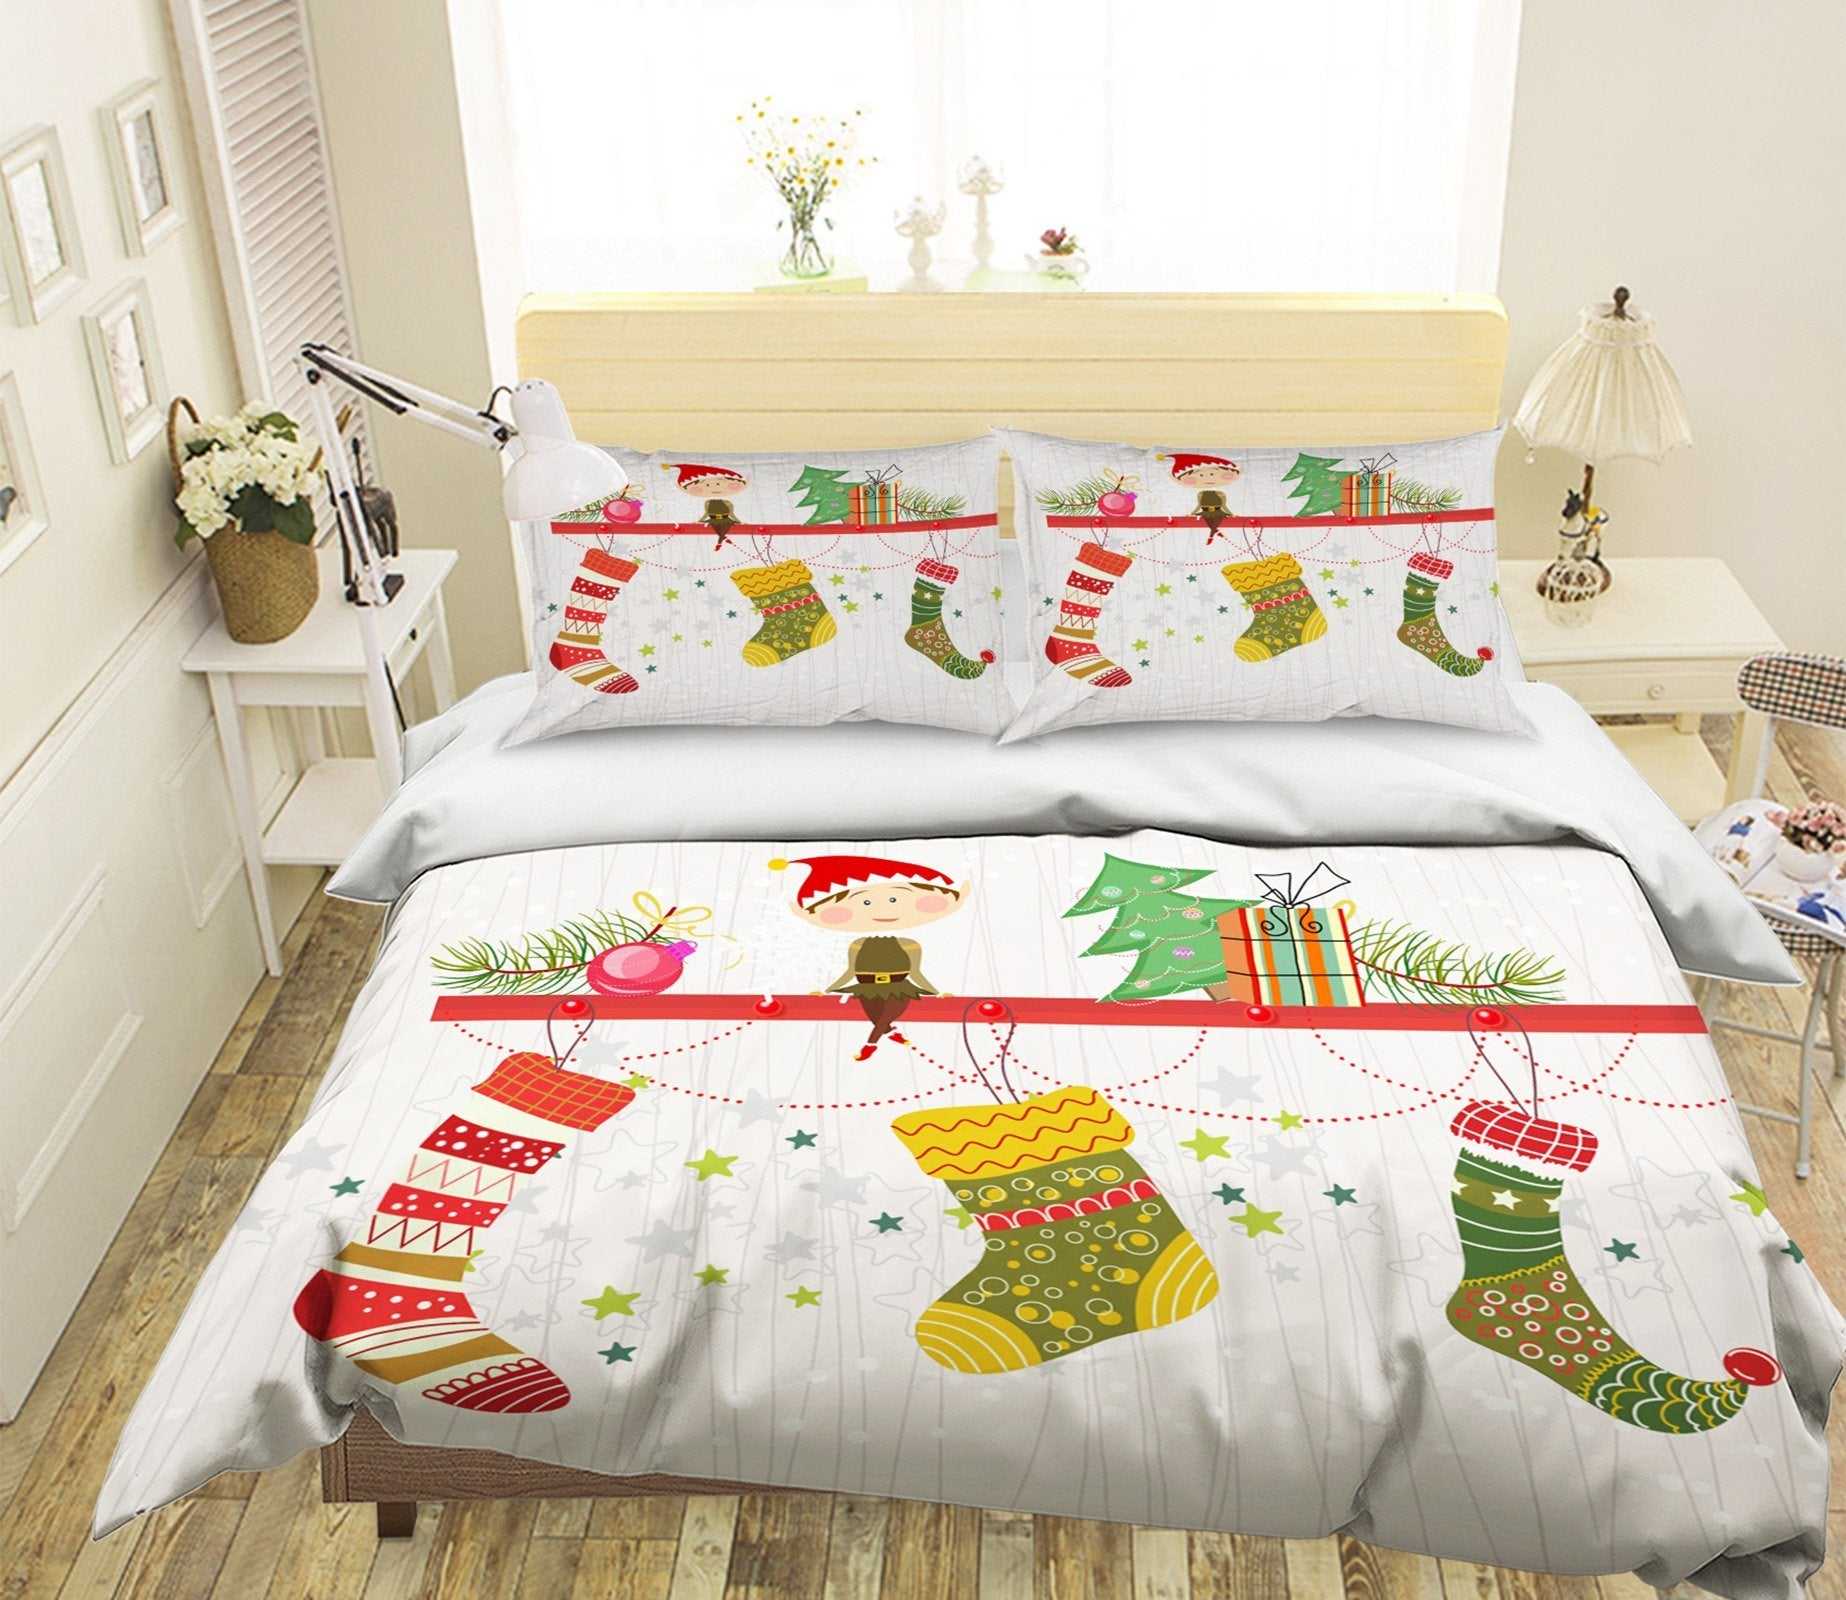 3D Christmas Sock Hanging 2 Bed Pillowcases Quilt Quiet Covers AJ Creativity Home